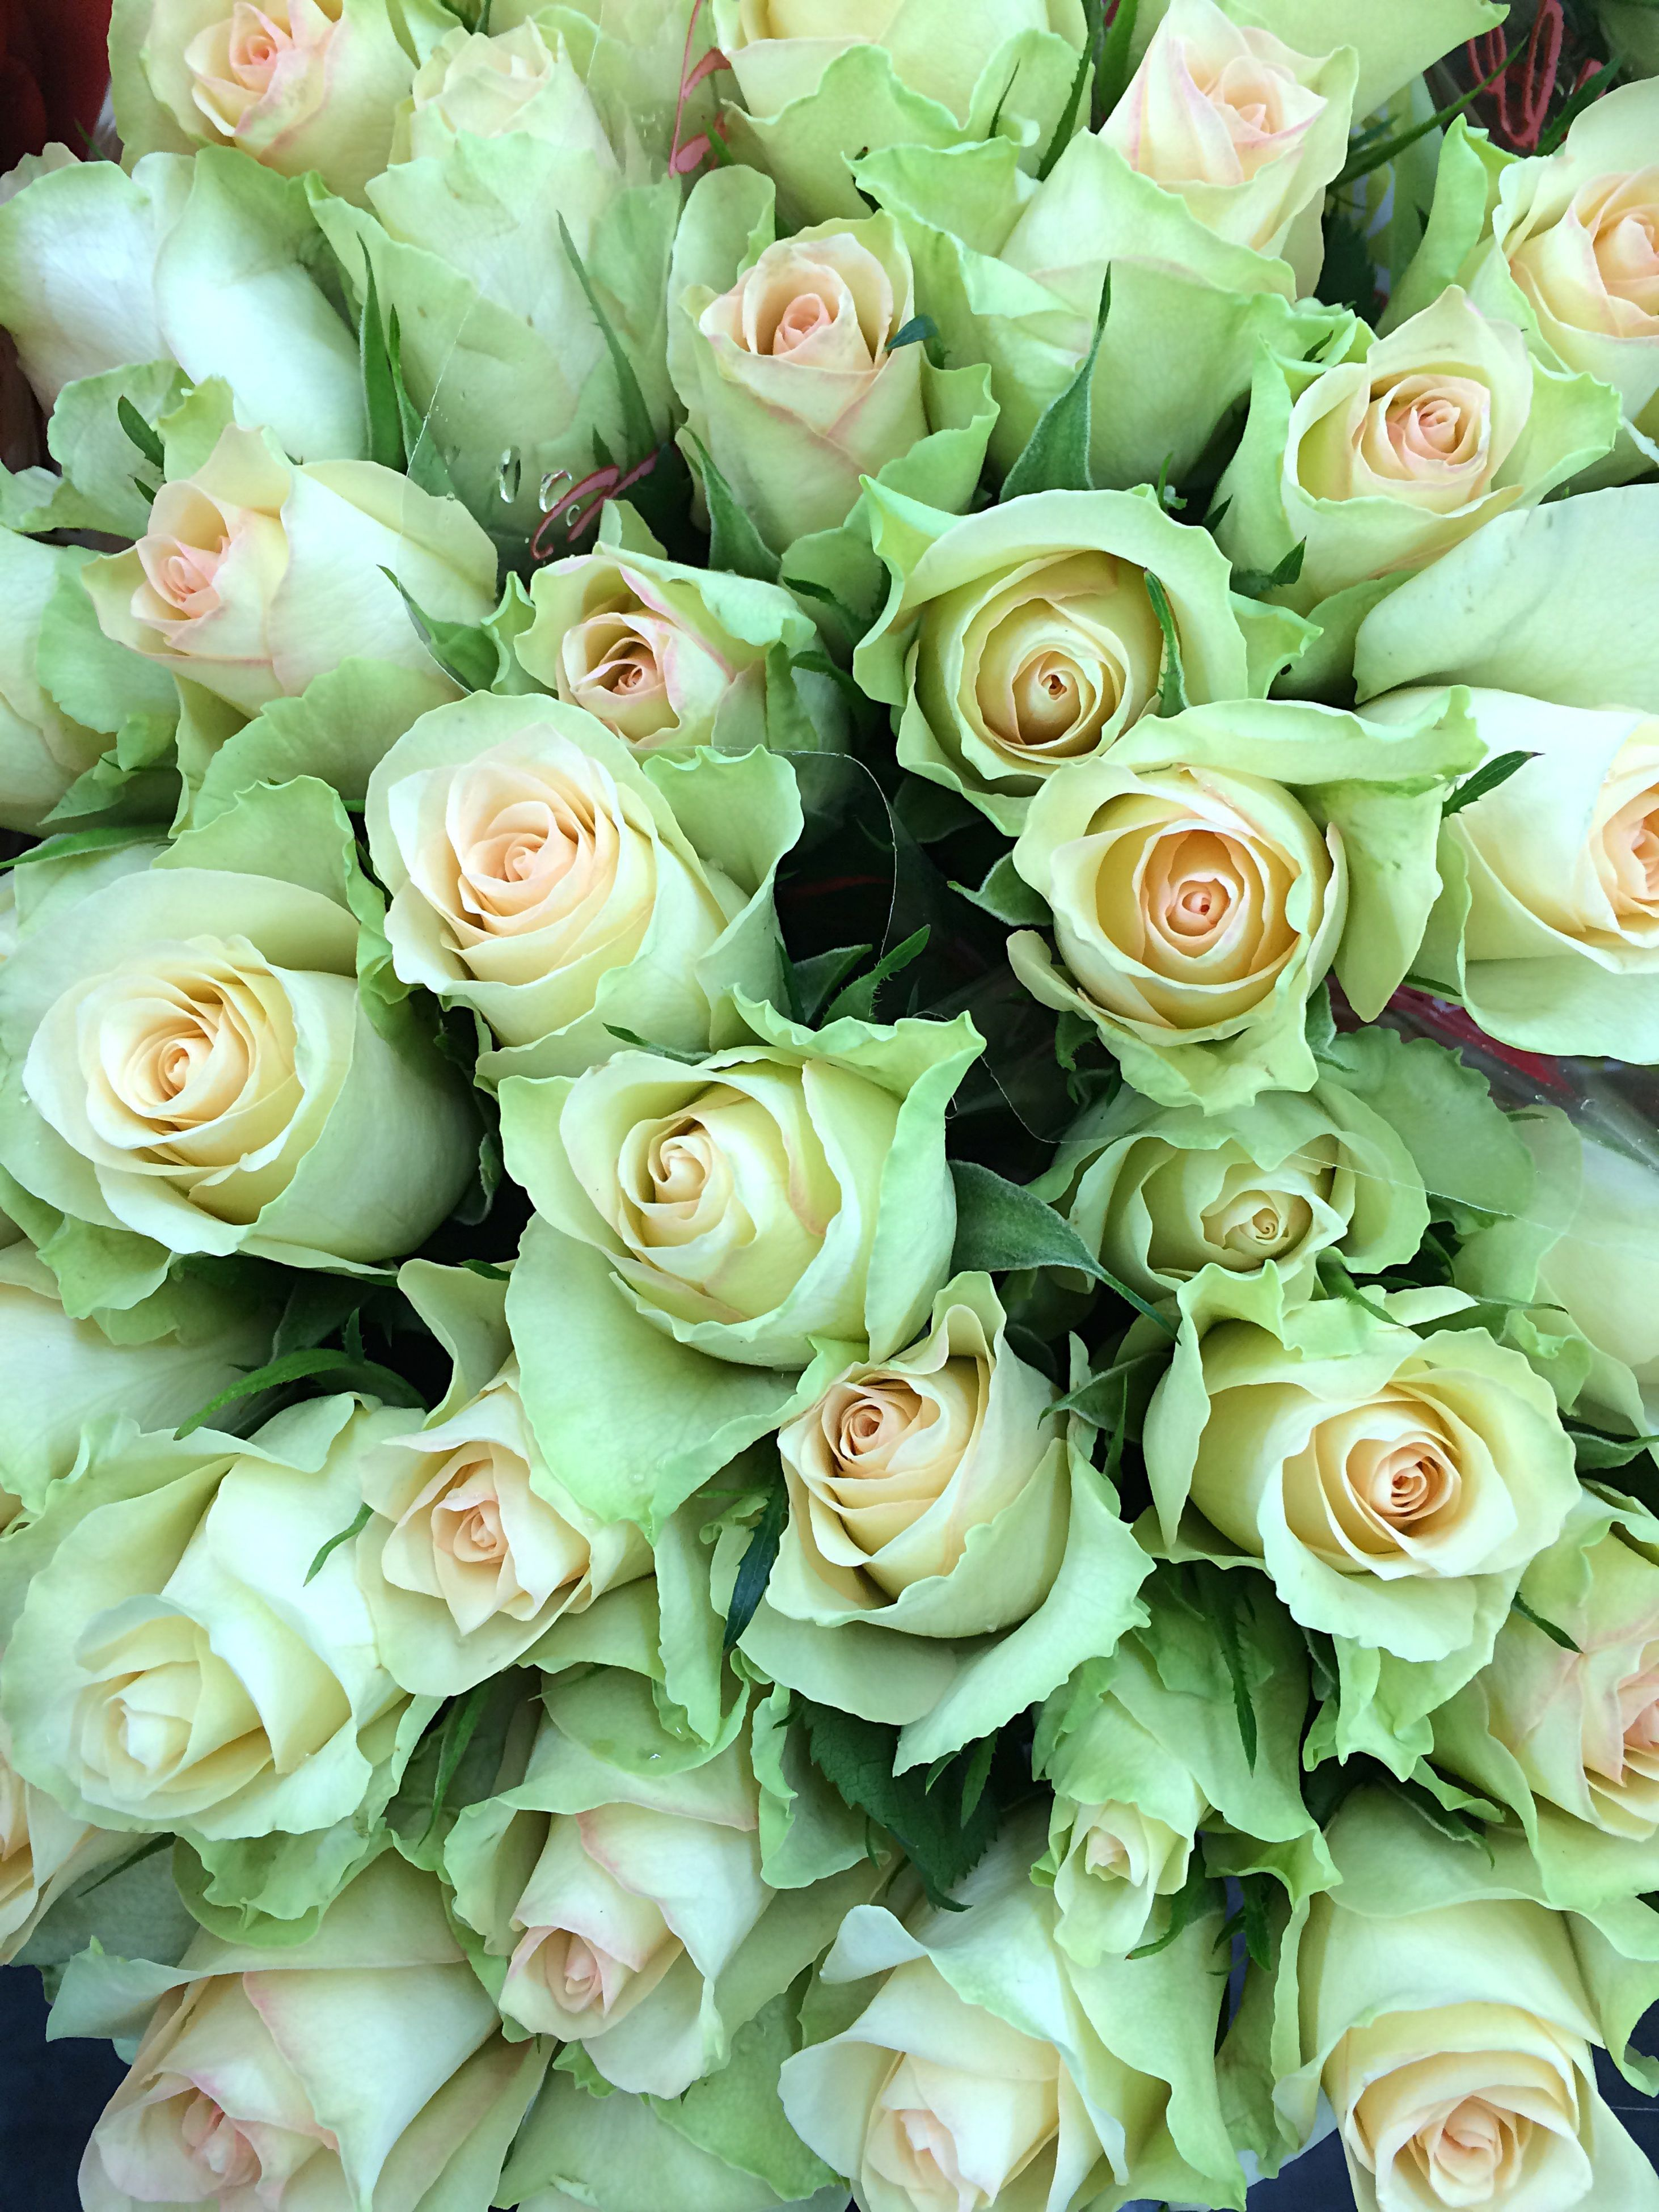 flower, freshness, fragility, petal, flower head, beauty in nature, bunch of flowers, bouquet, rose - flower, full frame, growth, nature, backgrounds, abundance, high angle view, blooming, blossom, rose, indoors, flower arrangement